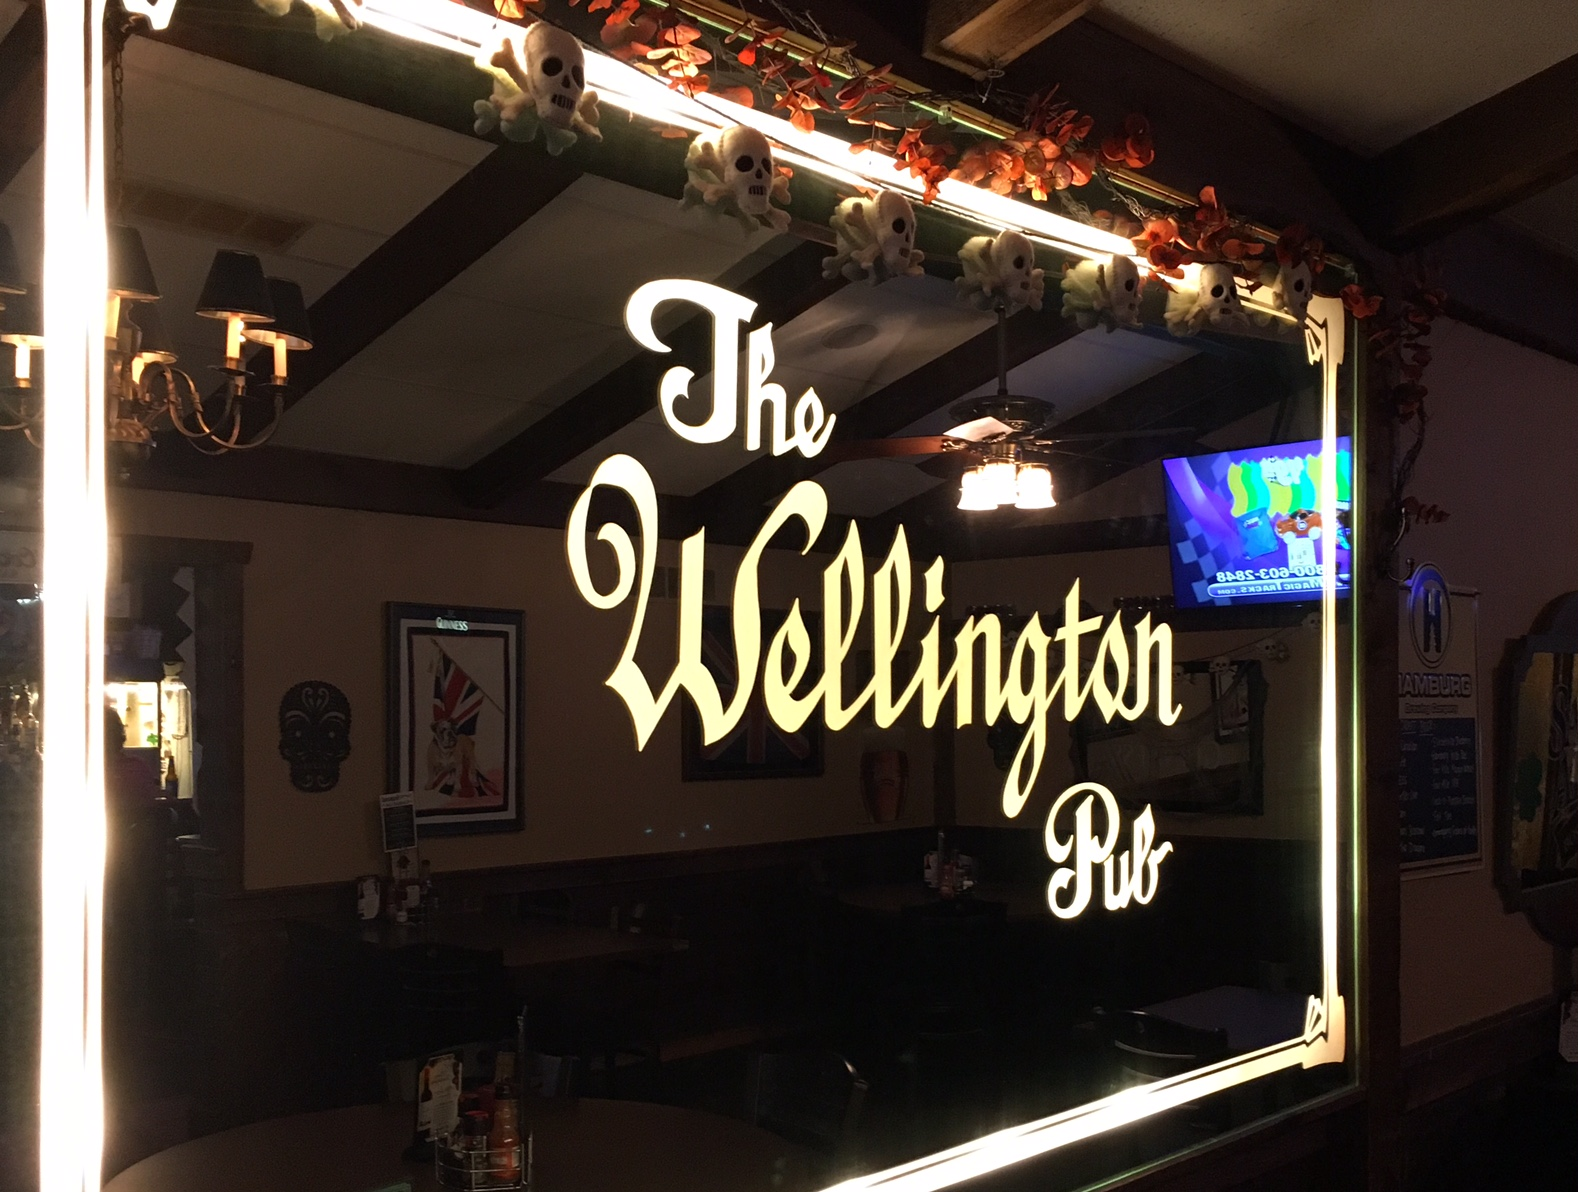 North Buffalo's Wellington Pub serves up dependable fare for sports fans touring the burgeoning Hertel District.